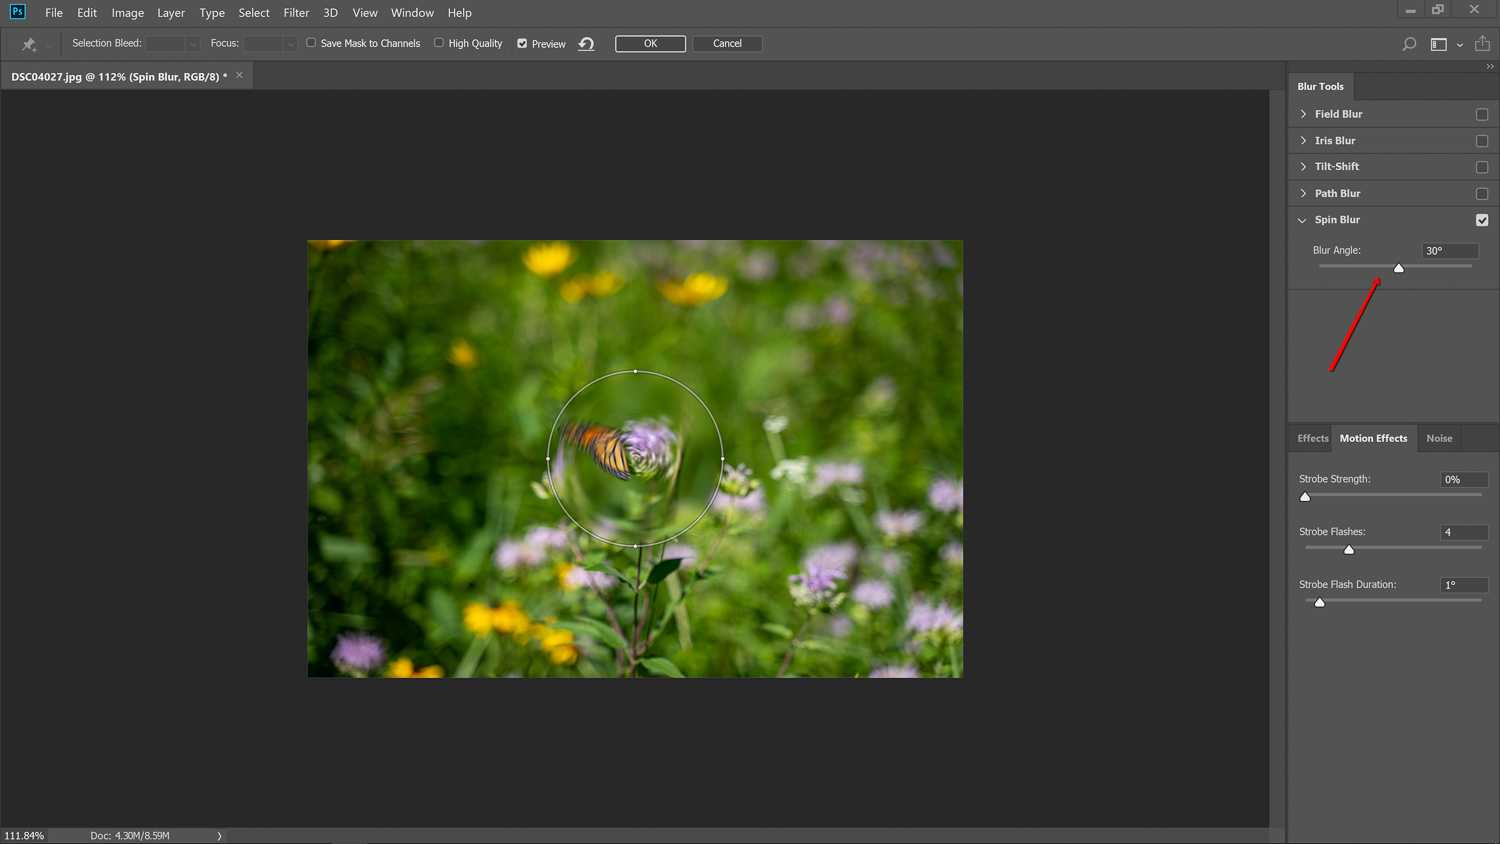 blur angle slider - How to Simulate a Swirly Bokeh in Photoshop